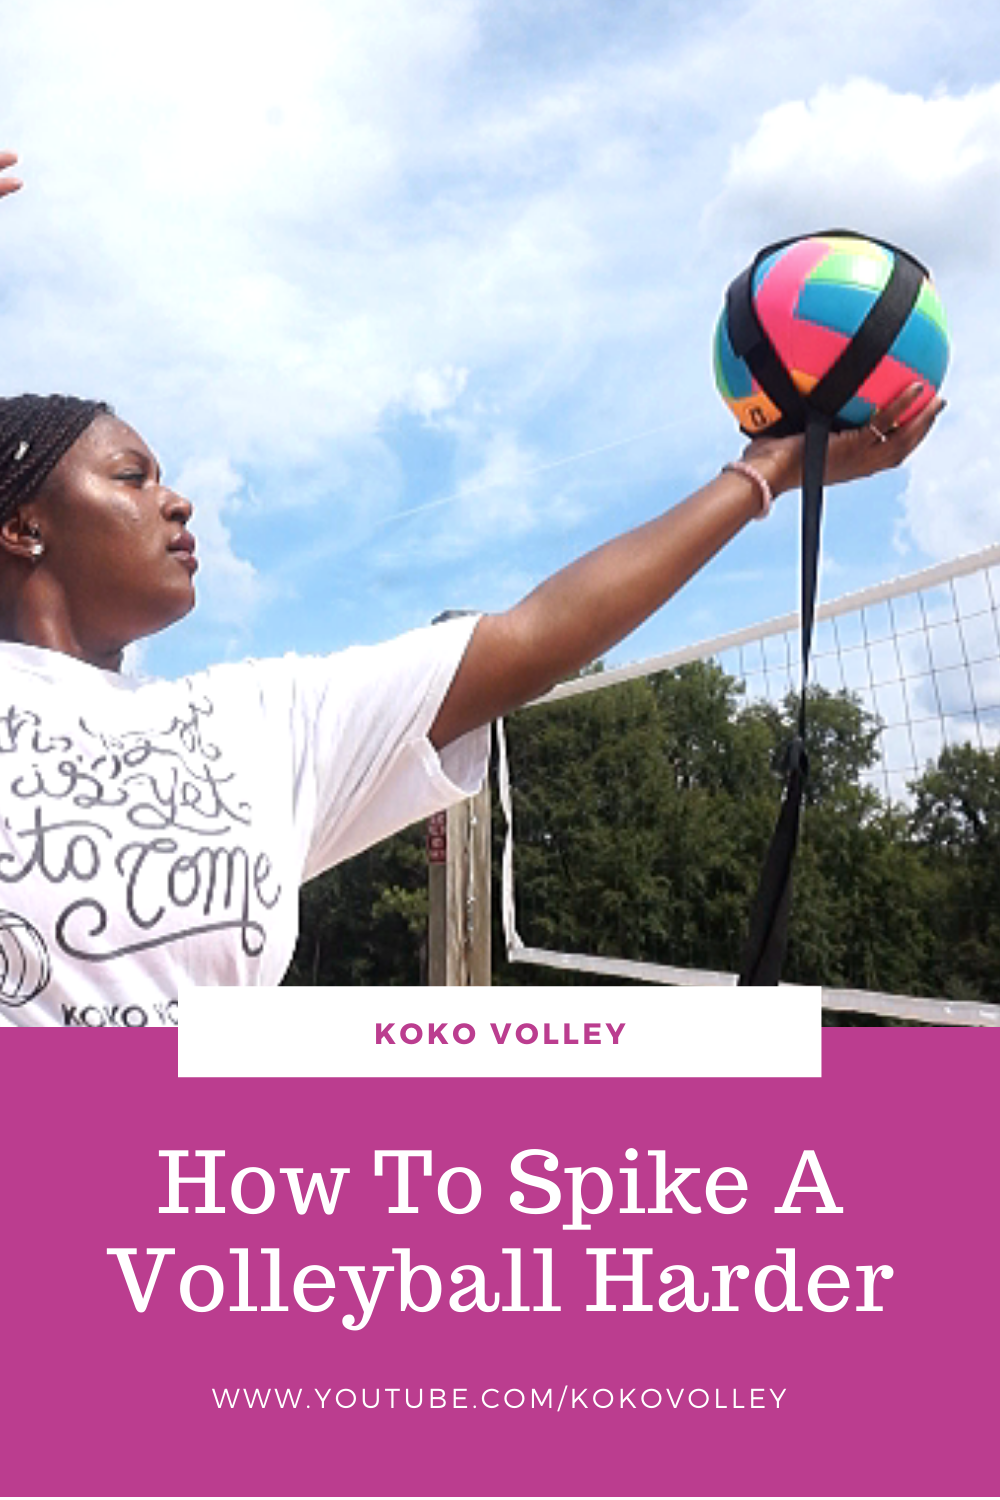 It S The Second Part Of The Volleyball Hitter S Segment Today We Will Be Working On The Arm Swing Mechanics Bei In 2020 Volleyball Spiker Volleyball Volleyball Hitter